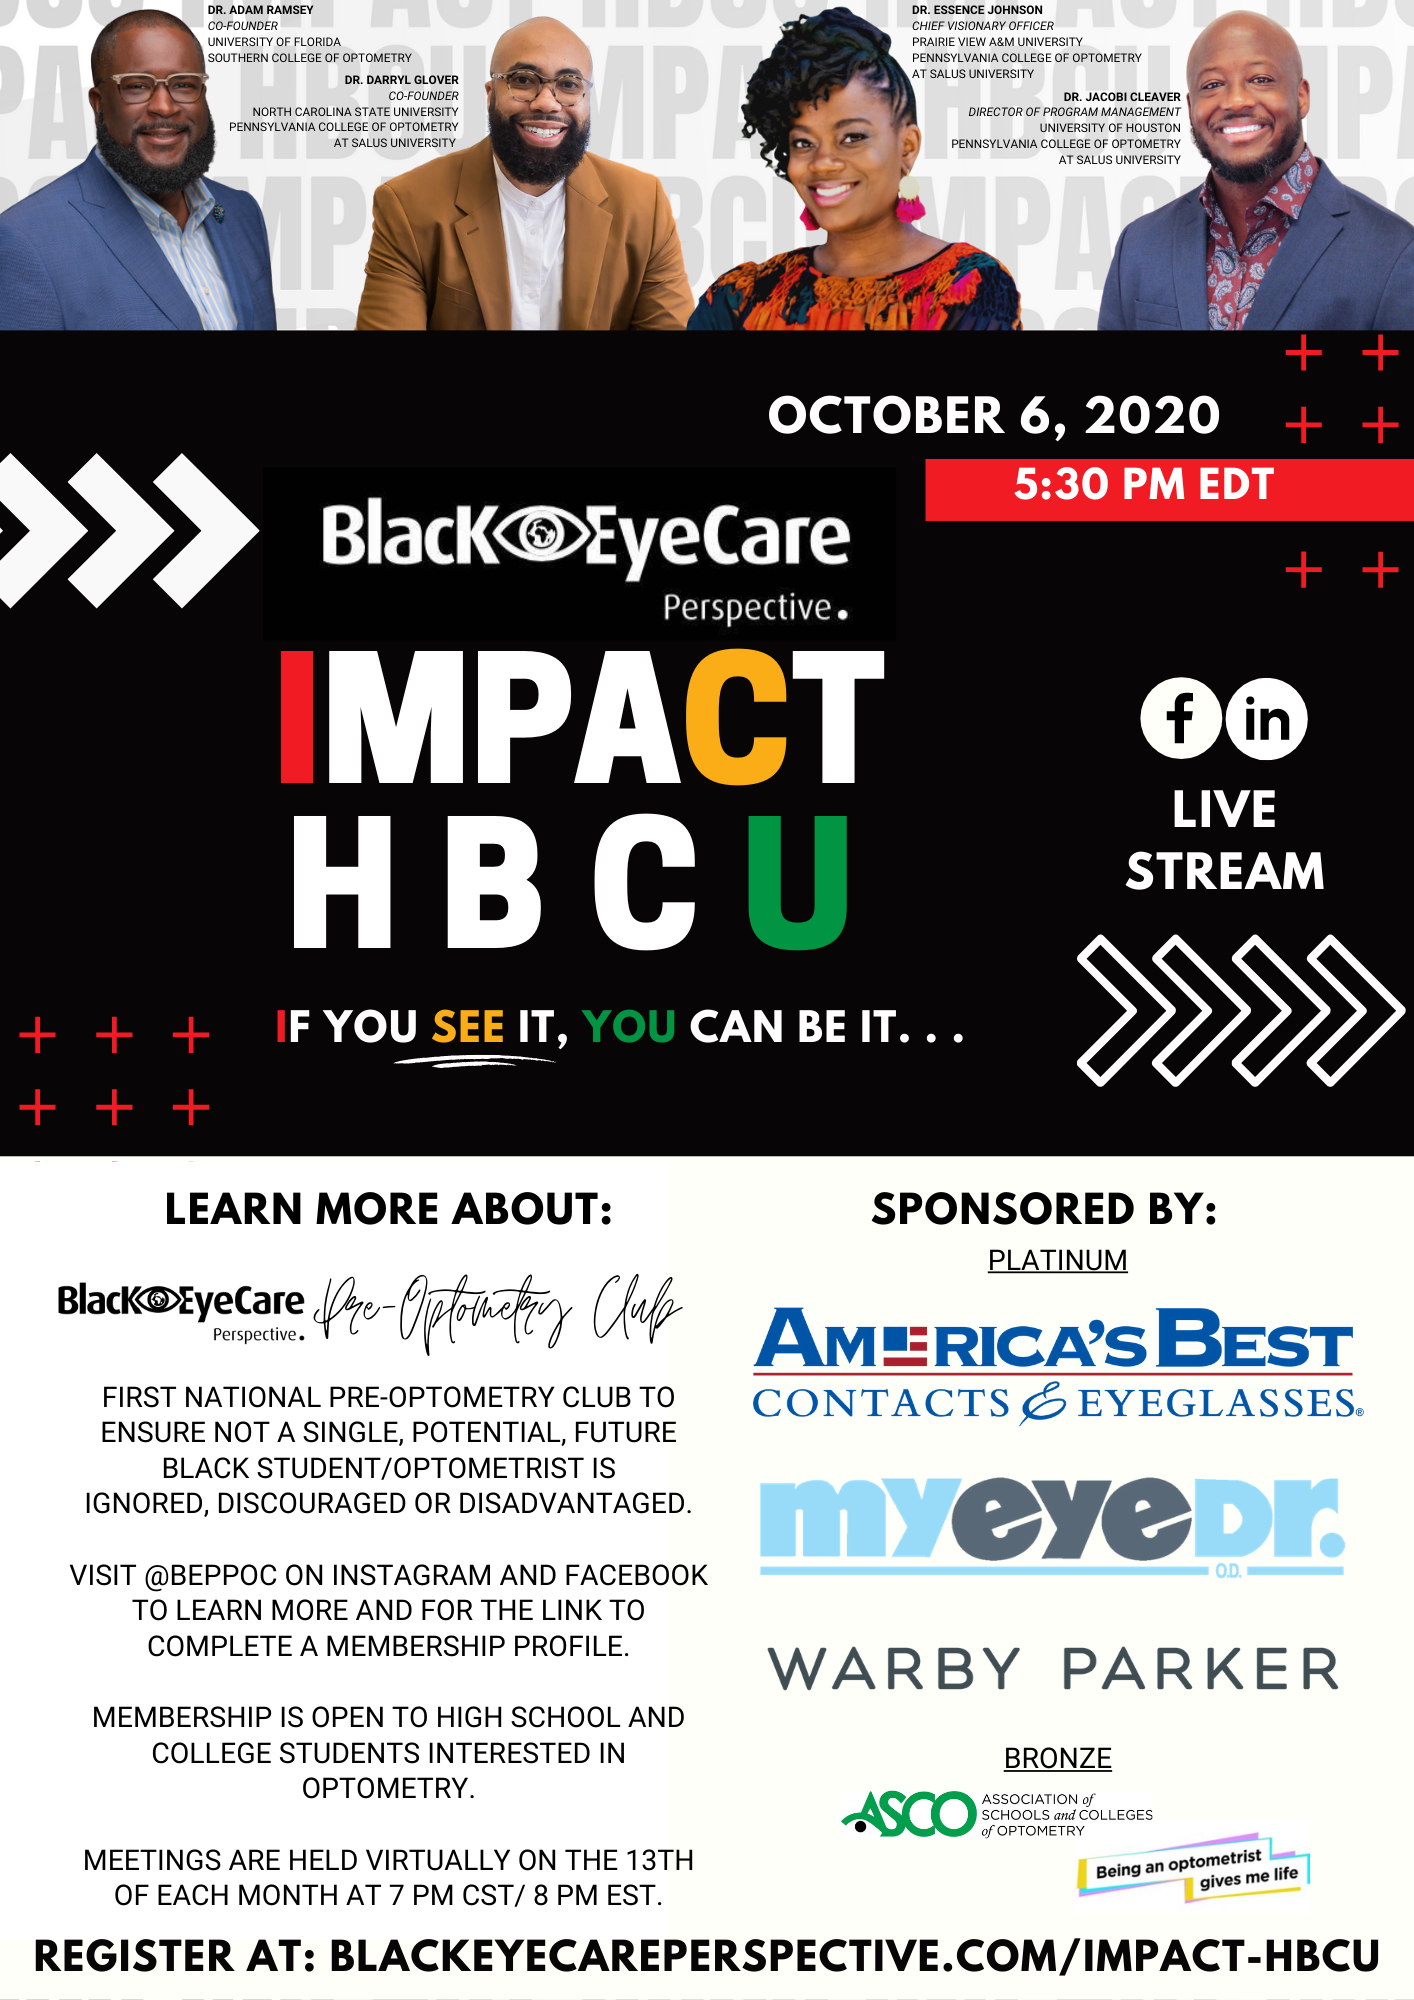 A flyer for the Black EyeCare Perspective Impact HBCU event 2020.